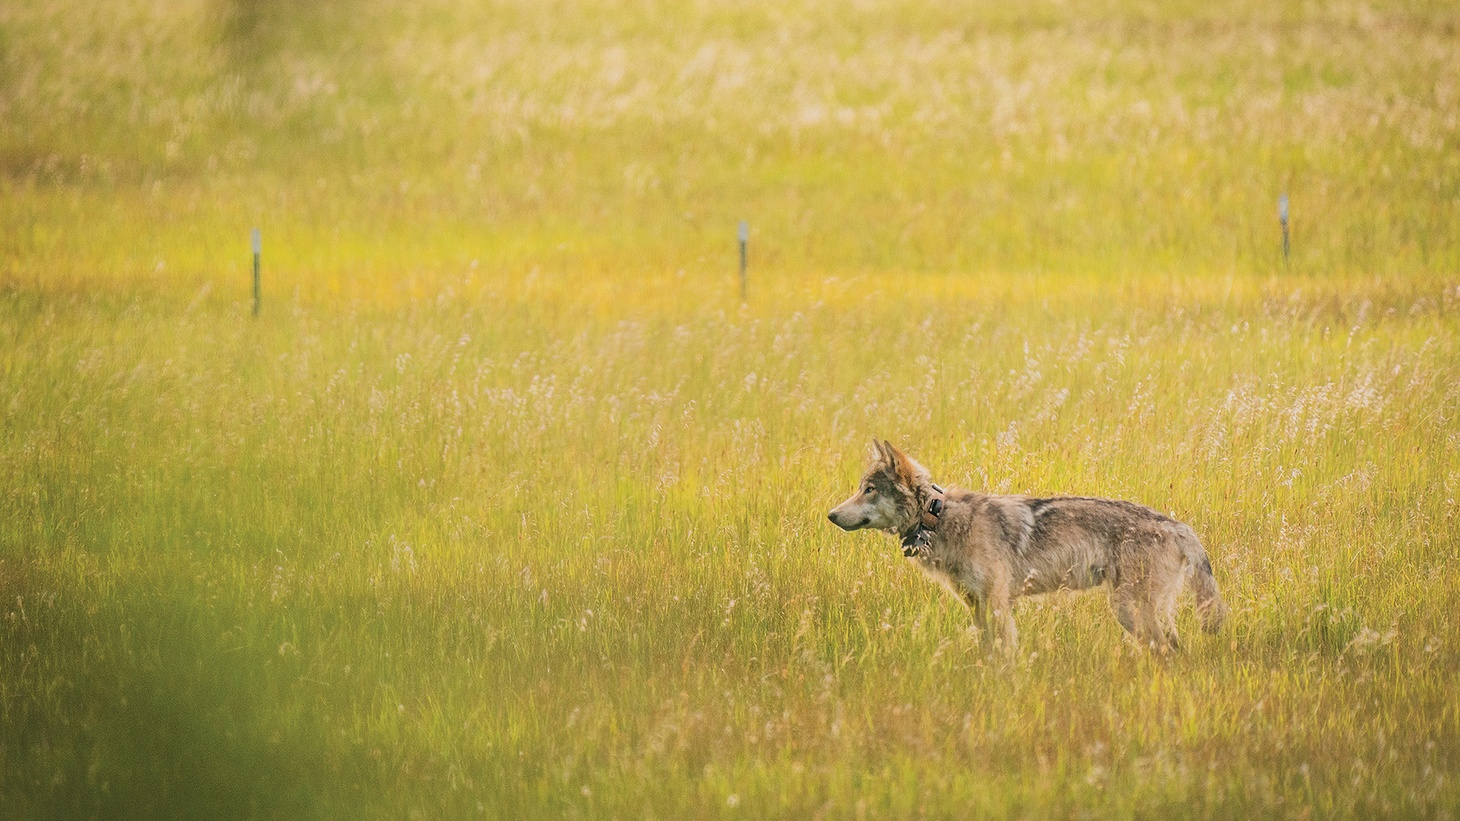 A young male in Lassen County, California, wears a collar that transmits his location. He was in a litter of four pups born in the area in 2019.